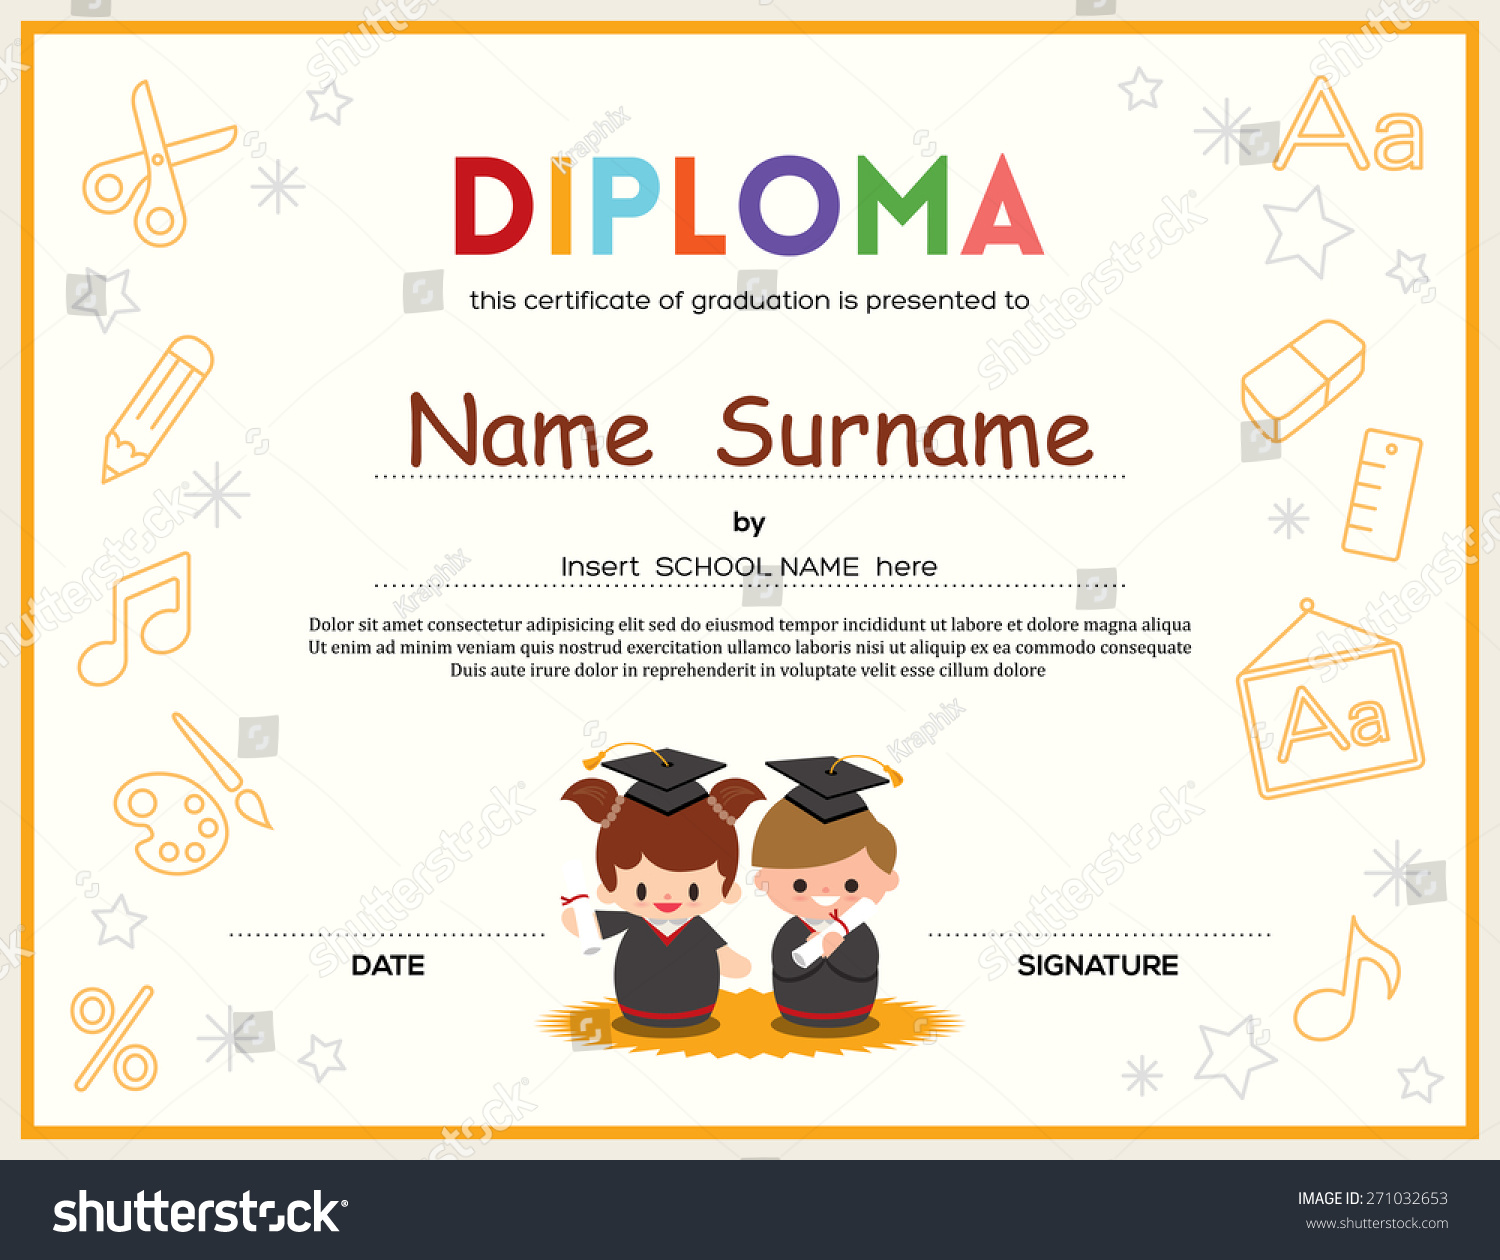 high school diploma certificate fancy design templates - preschool kids diploma certificate background design stock